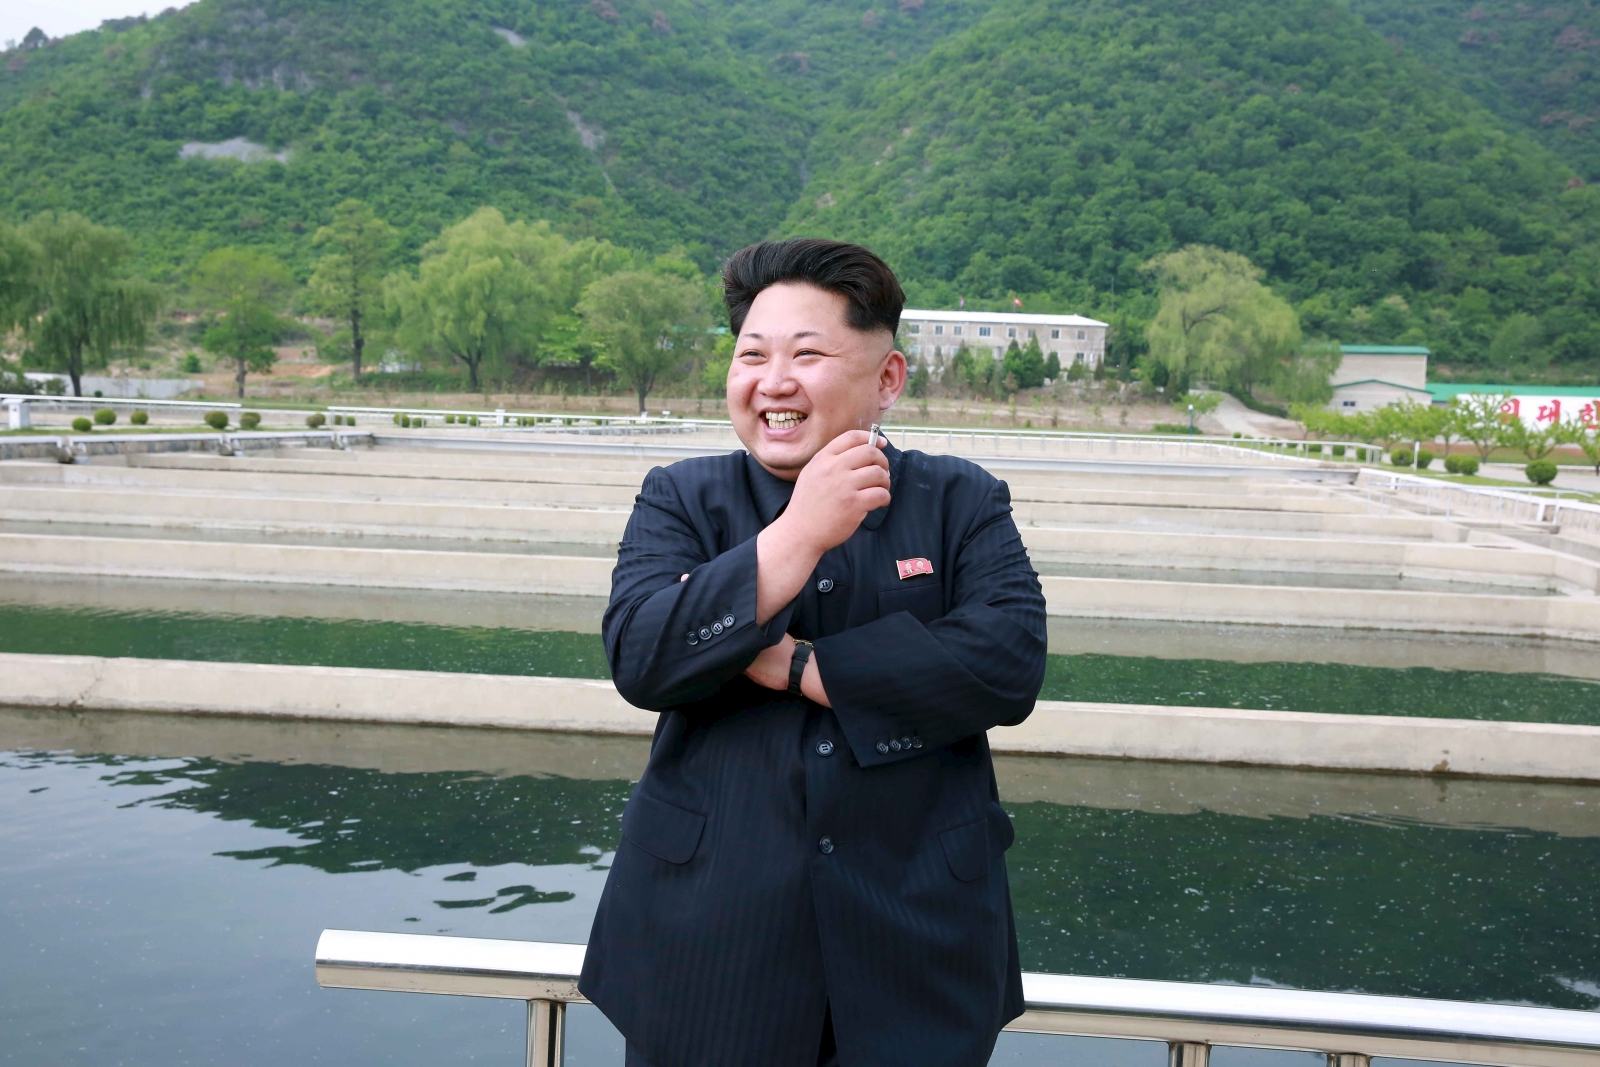 North Korea's Kim Jong-un's brother spotted